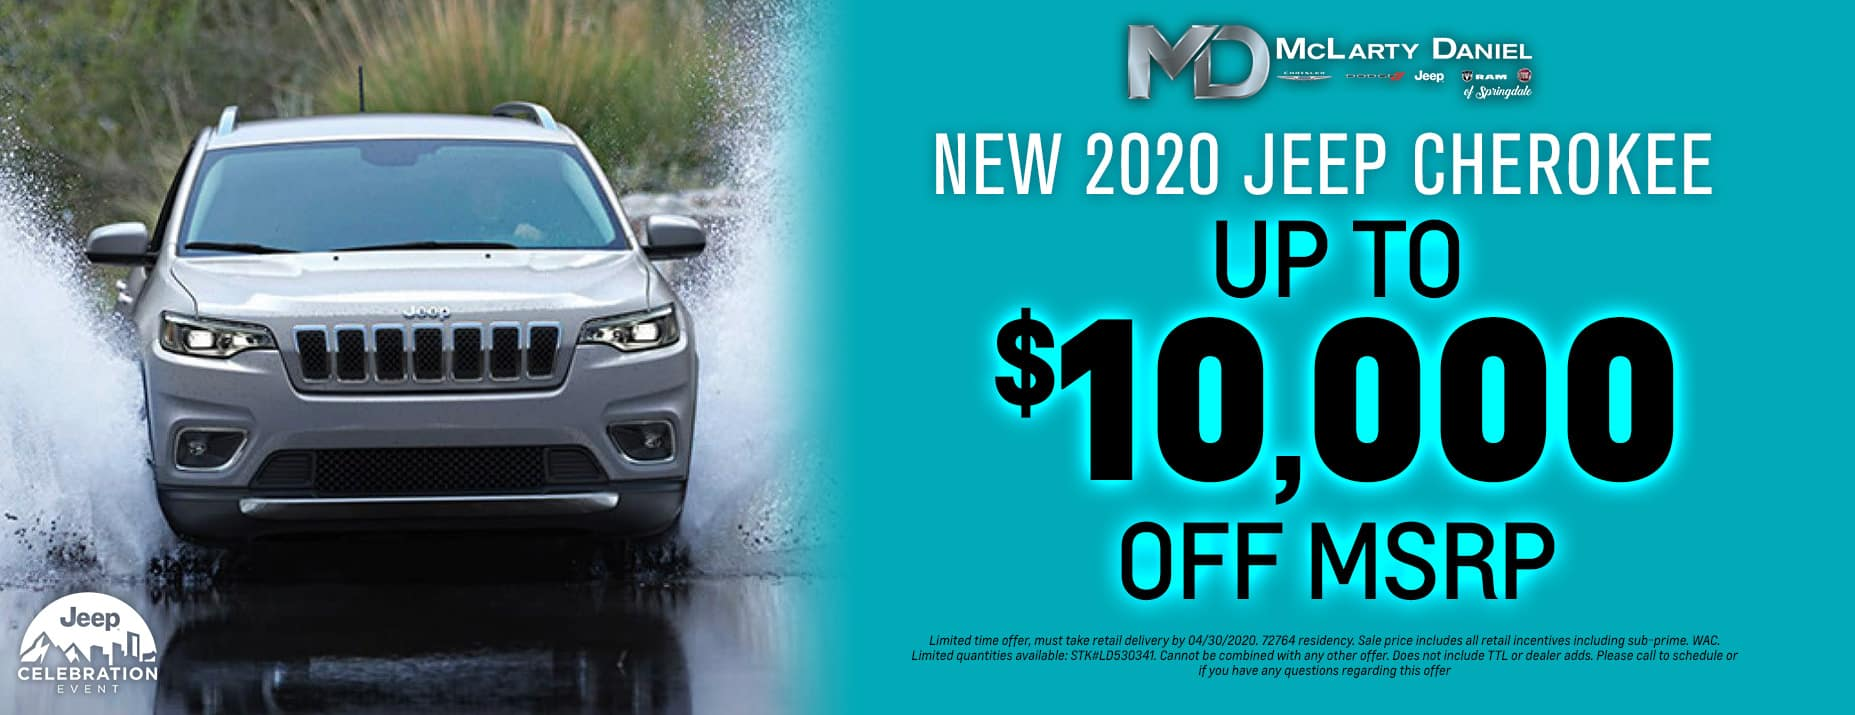 Take Up To $10,000 off 2020 Jeep Cherokee!